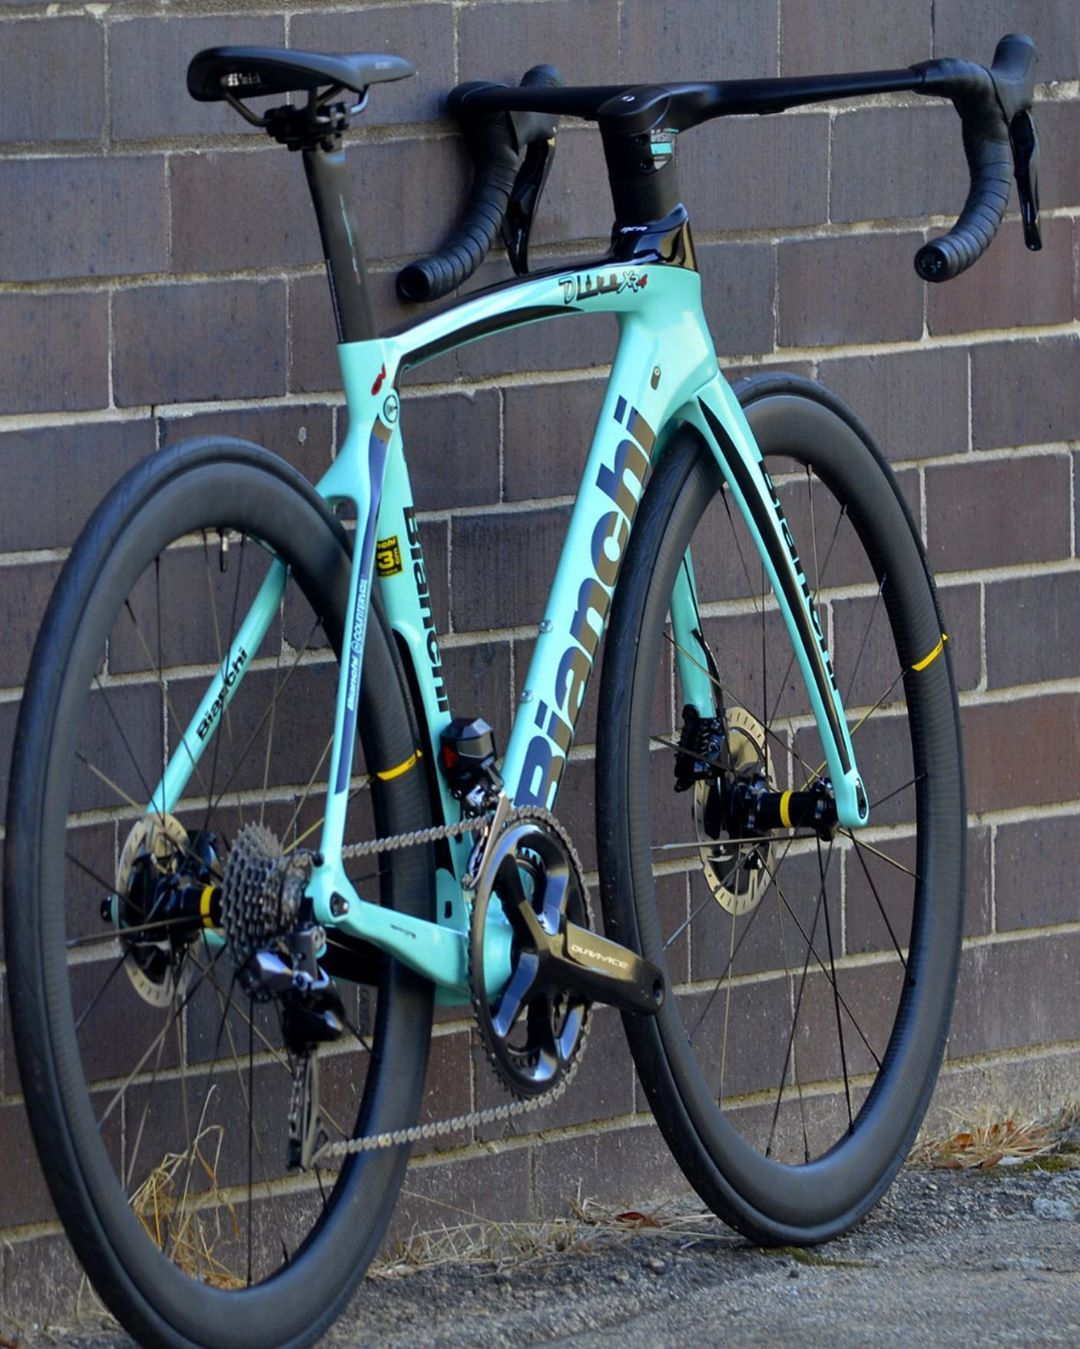 Pin By Surya Bagus R On Colour Reference In 2020 Bike Cool Bikes Bianchi Bicycle